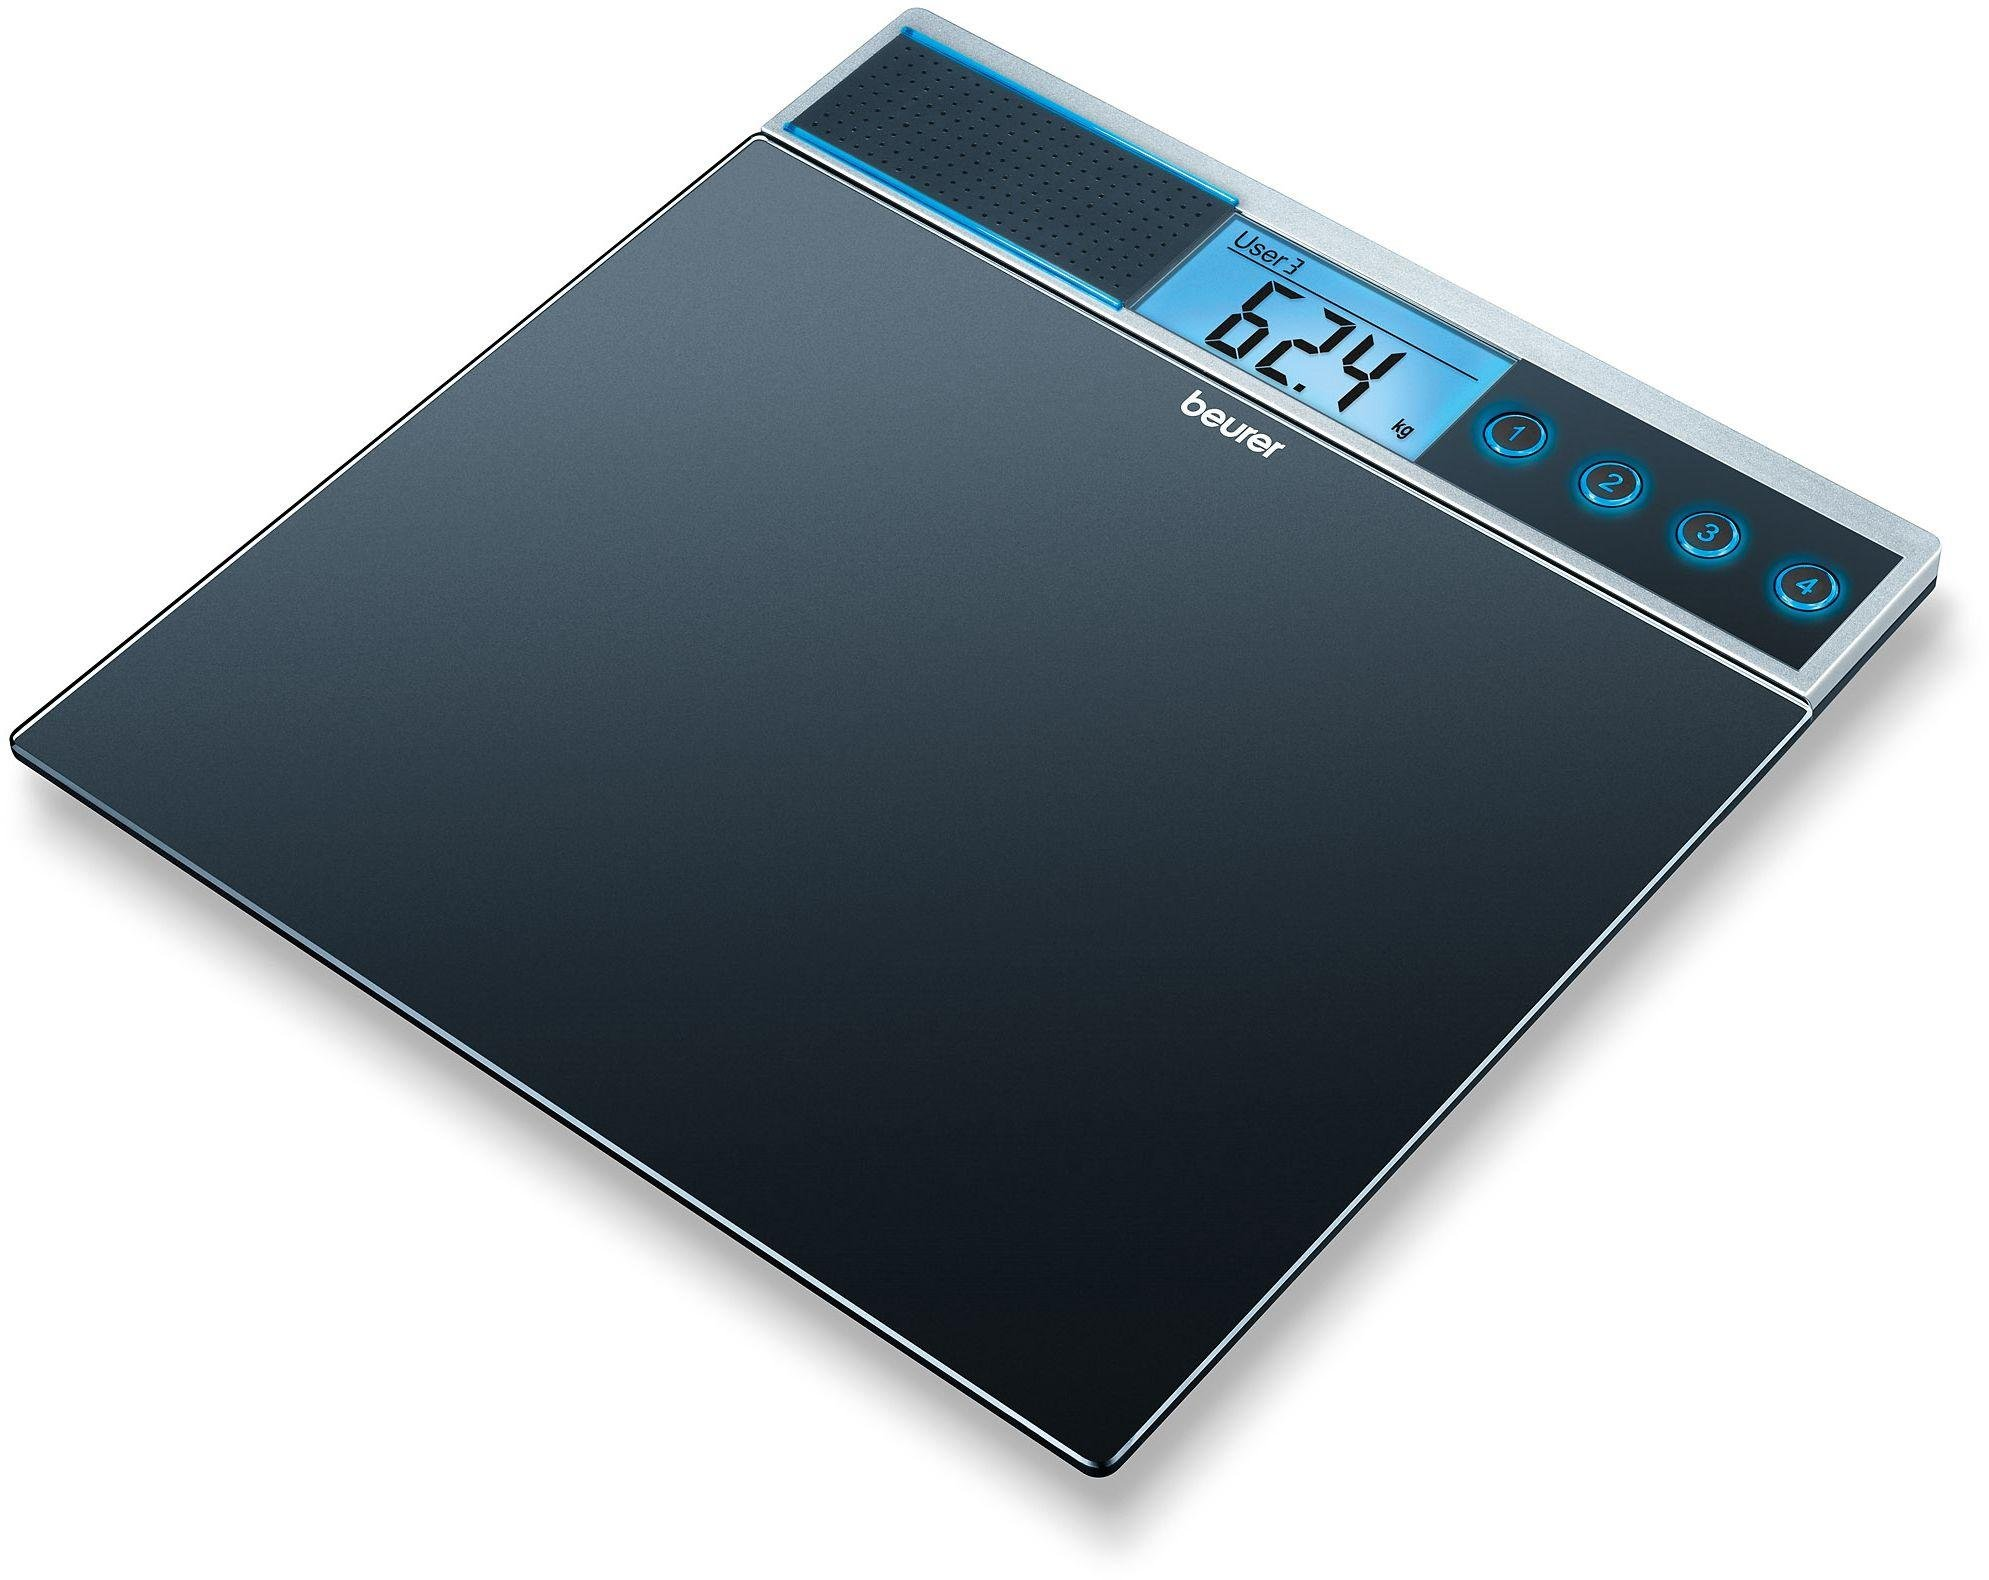 Beurer GS39 Glass Talking Scale - Black.